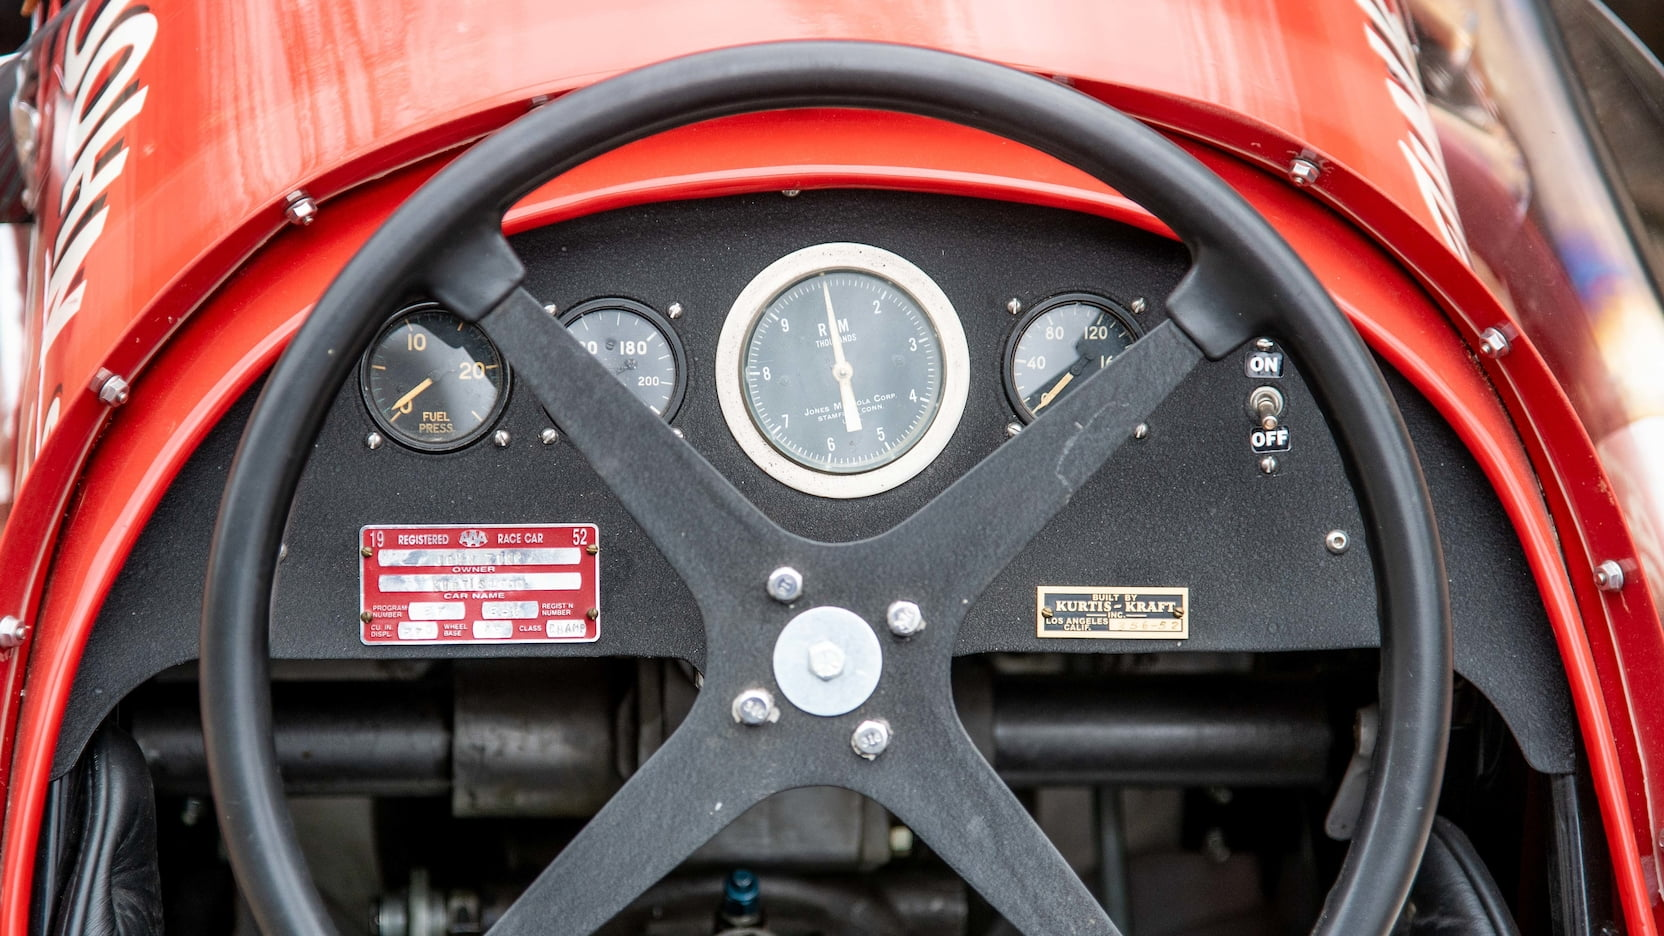 1952 Kurtis Kraft 4000 Indy Car gauges